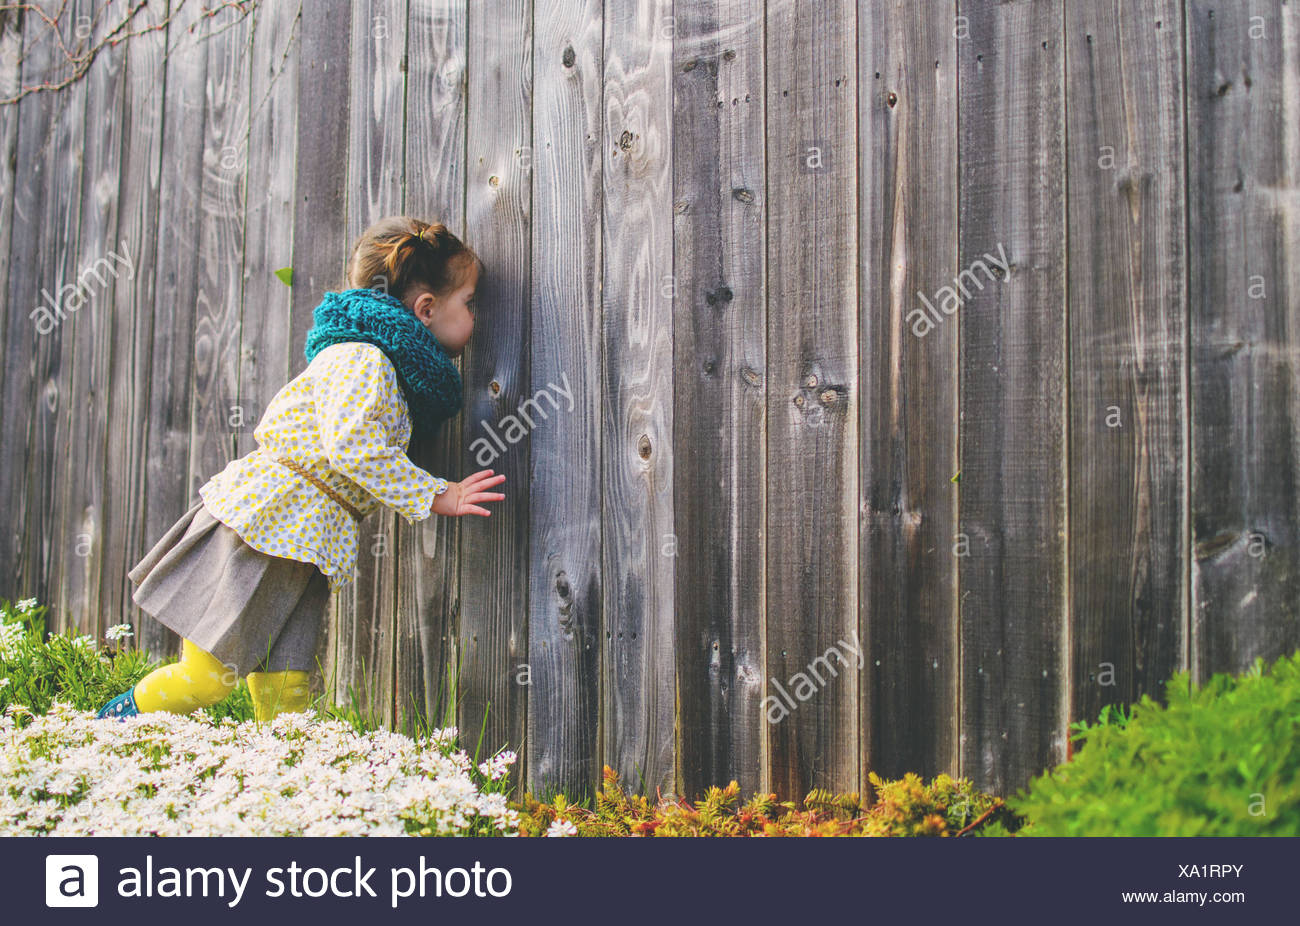 Girl (2-3) looking trough wooden fence - Stock Image